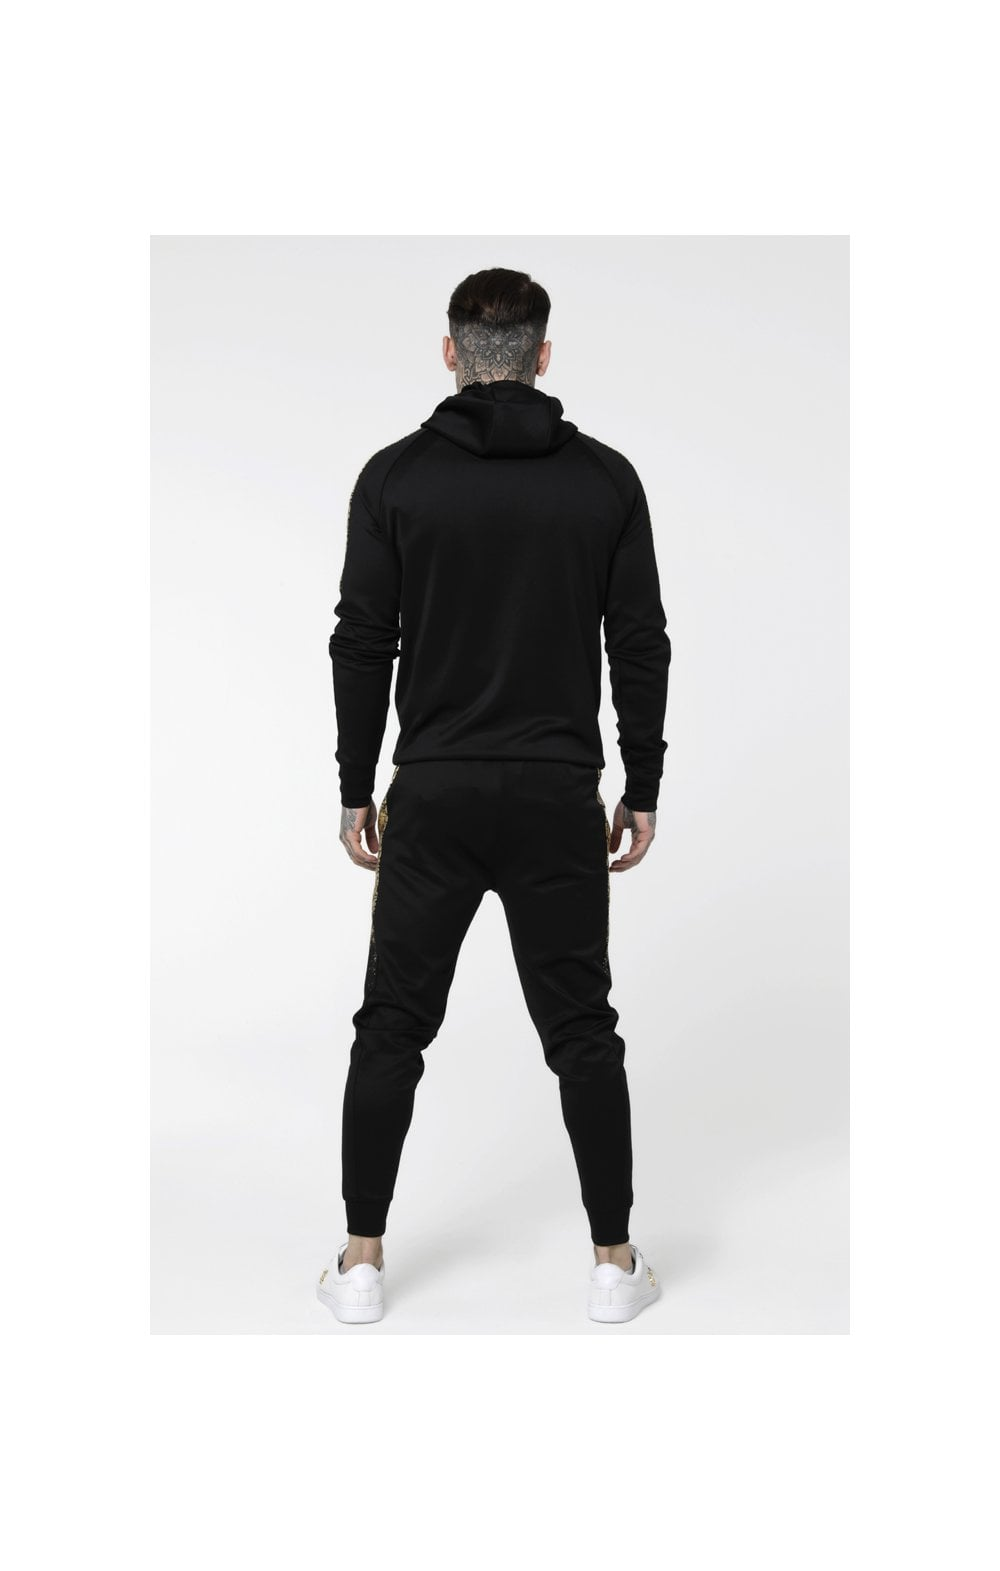 Load image into Gallery viewer, SikSilk Foil Fade Overhead Hoodie - Black & Gold (5)